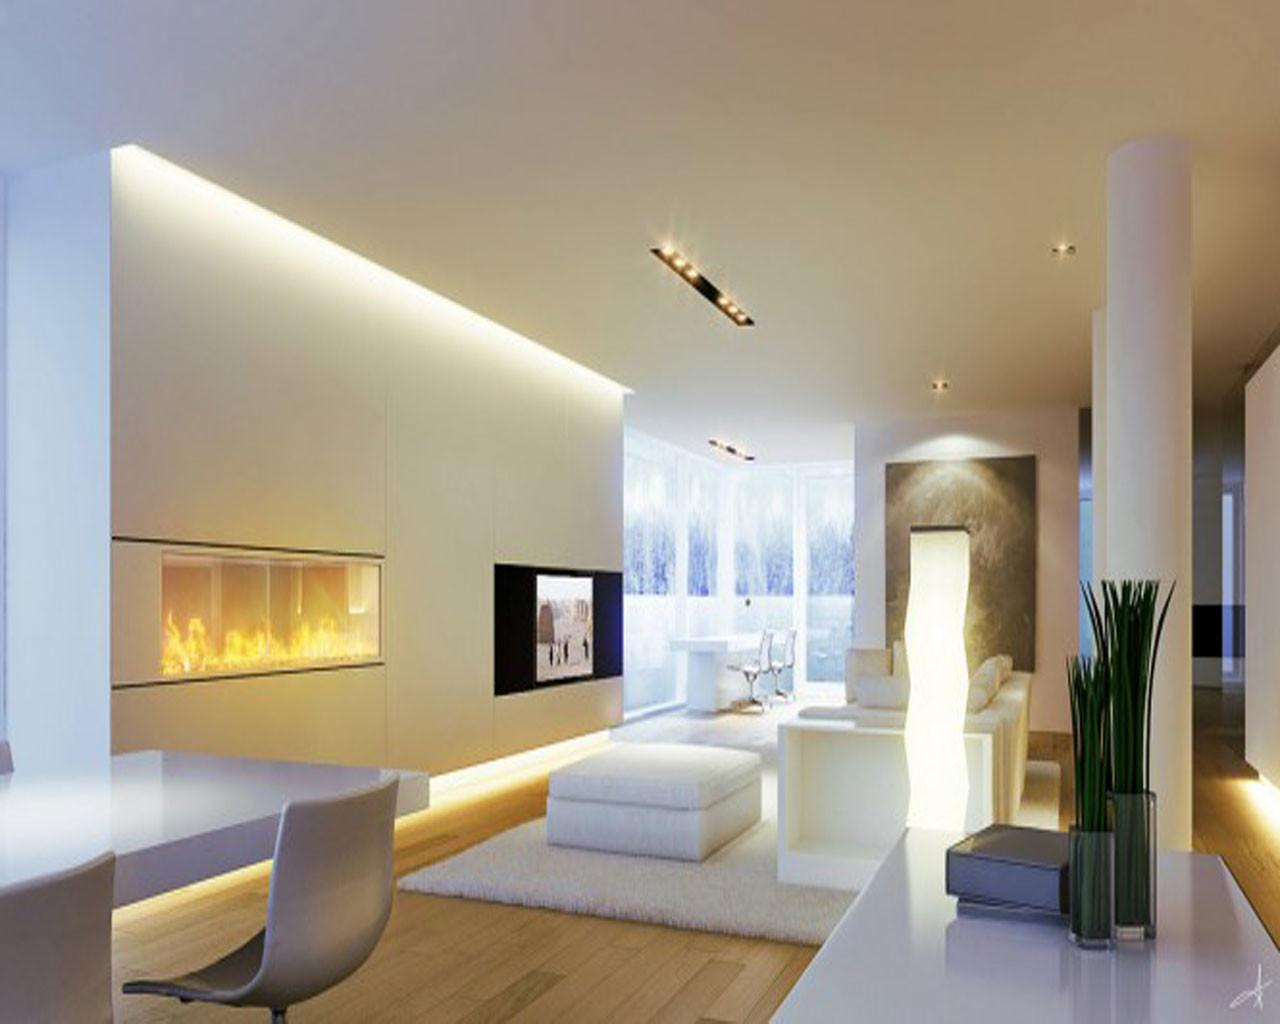 Extraordinary Contemporary Modern Chandeliers Ideas That Abound With Blissful Simplicity Photo Gallery Decoratorist